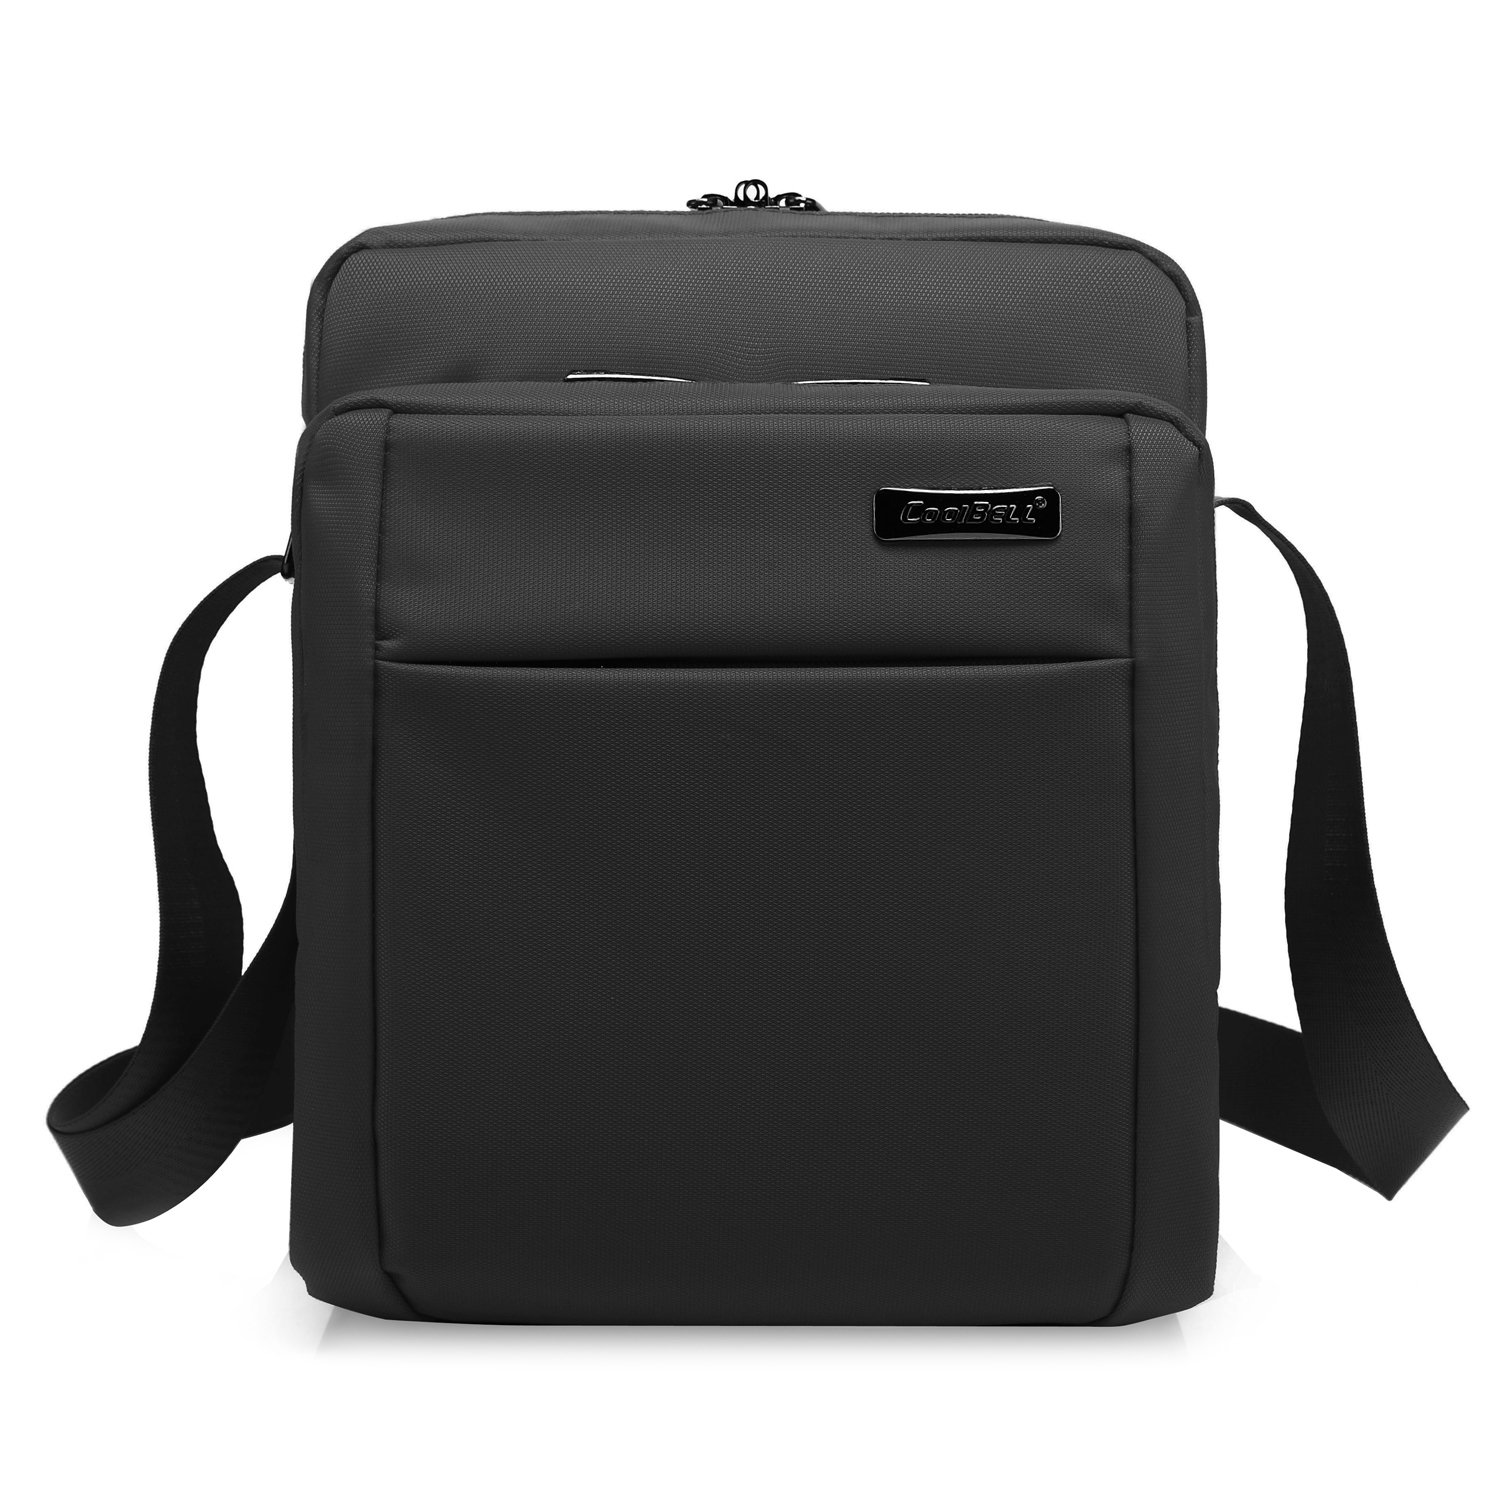 a0184114511d Get Quotations · CoolBELL 10.6 Inches Shoulder Bag Oxford Cloth Messenger  Bag iPad Carrying Case Functional Hand Bag Briefcase